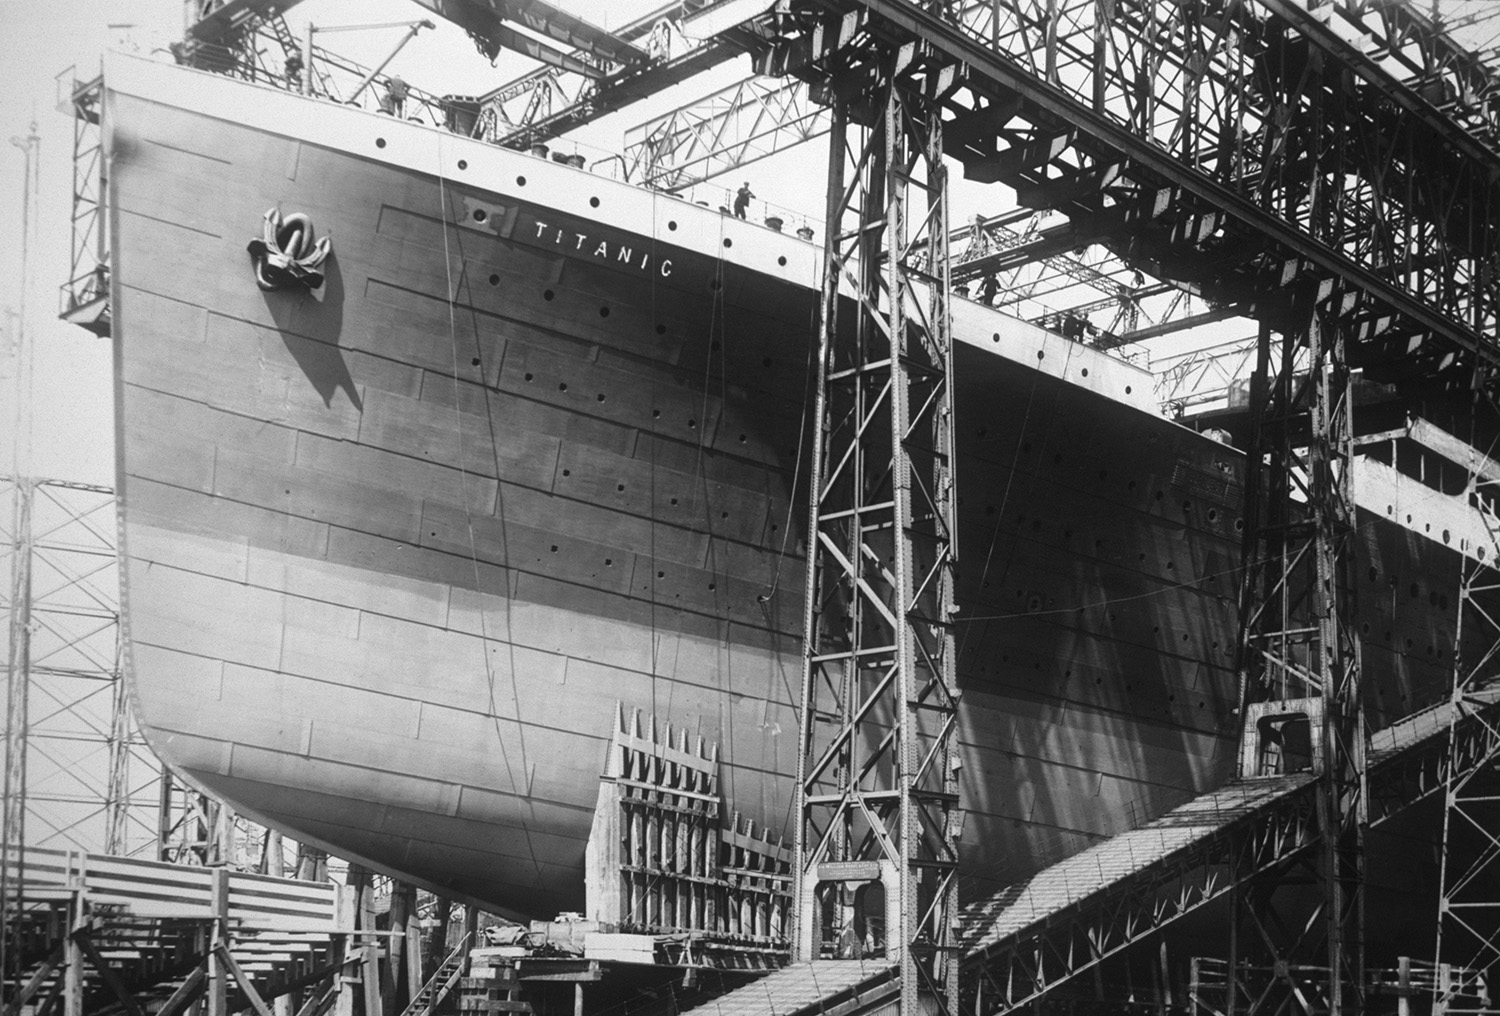 The Titanic under construction at Harland and Wolff shipyard in Belfast, Ireland. (Credit: Ralph White/CORBIS/Corbis via Getty Images)